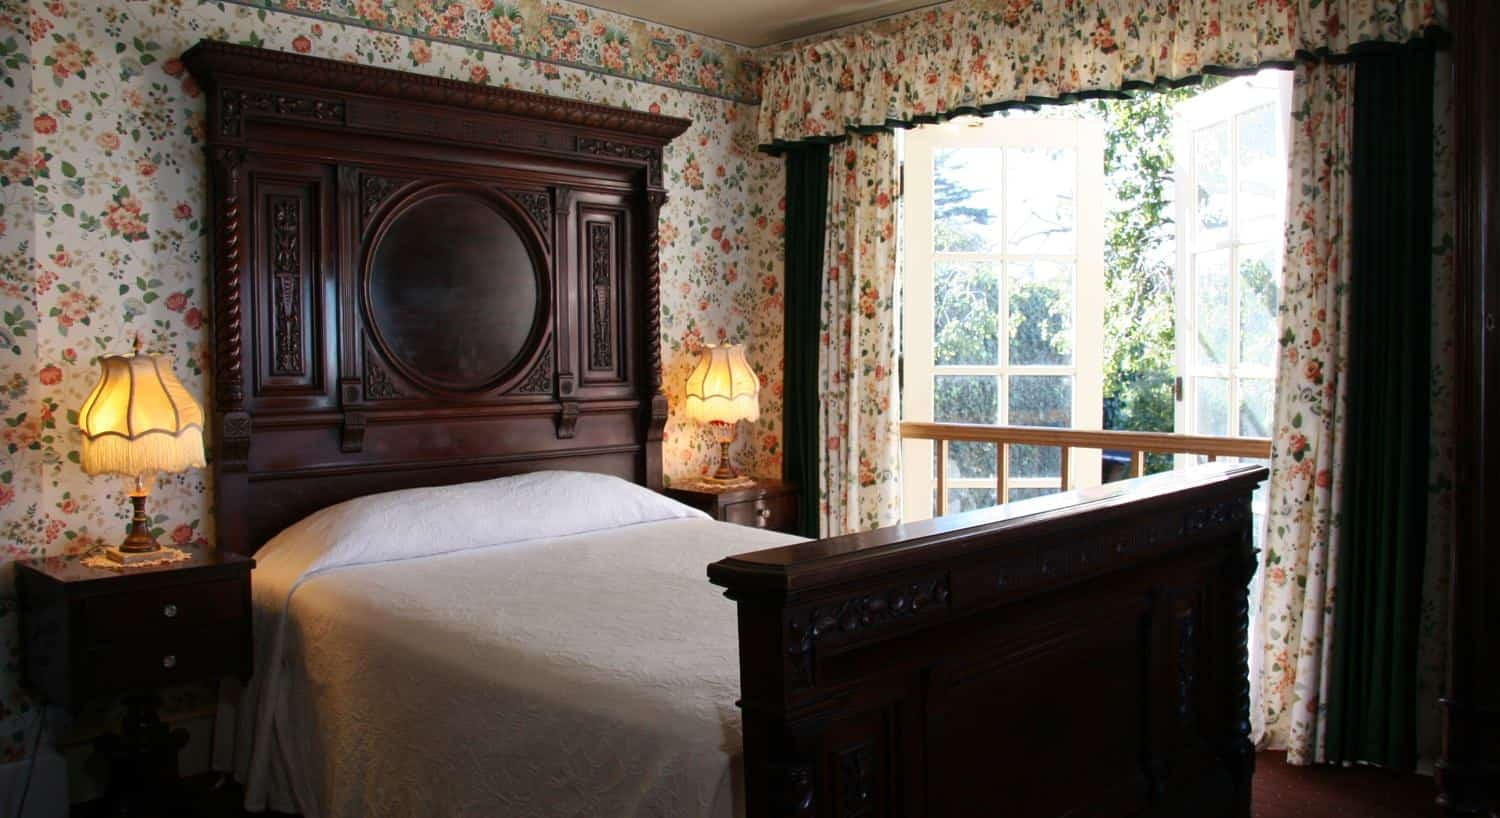 Malarin guest room with floral walls, wood bed with tall carved headboard, two nightstands with fringed lamps and French doors